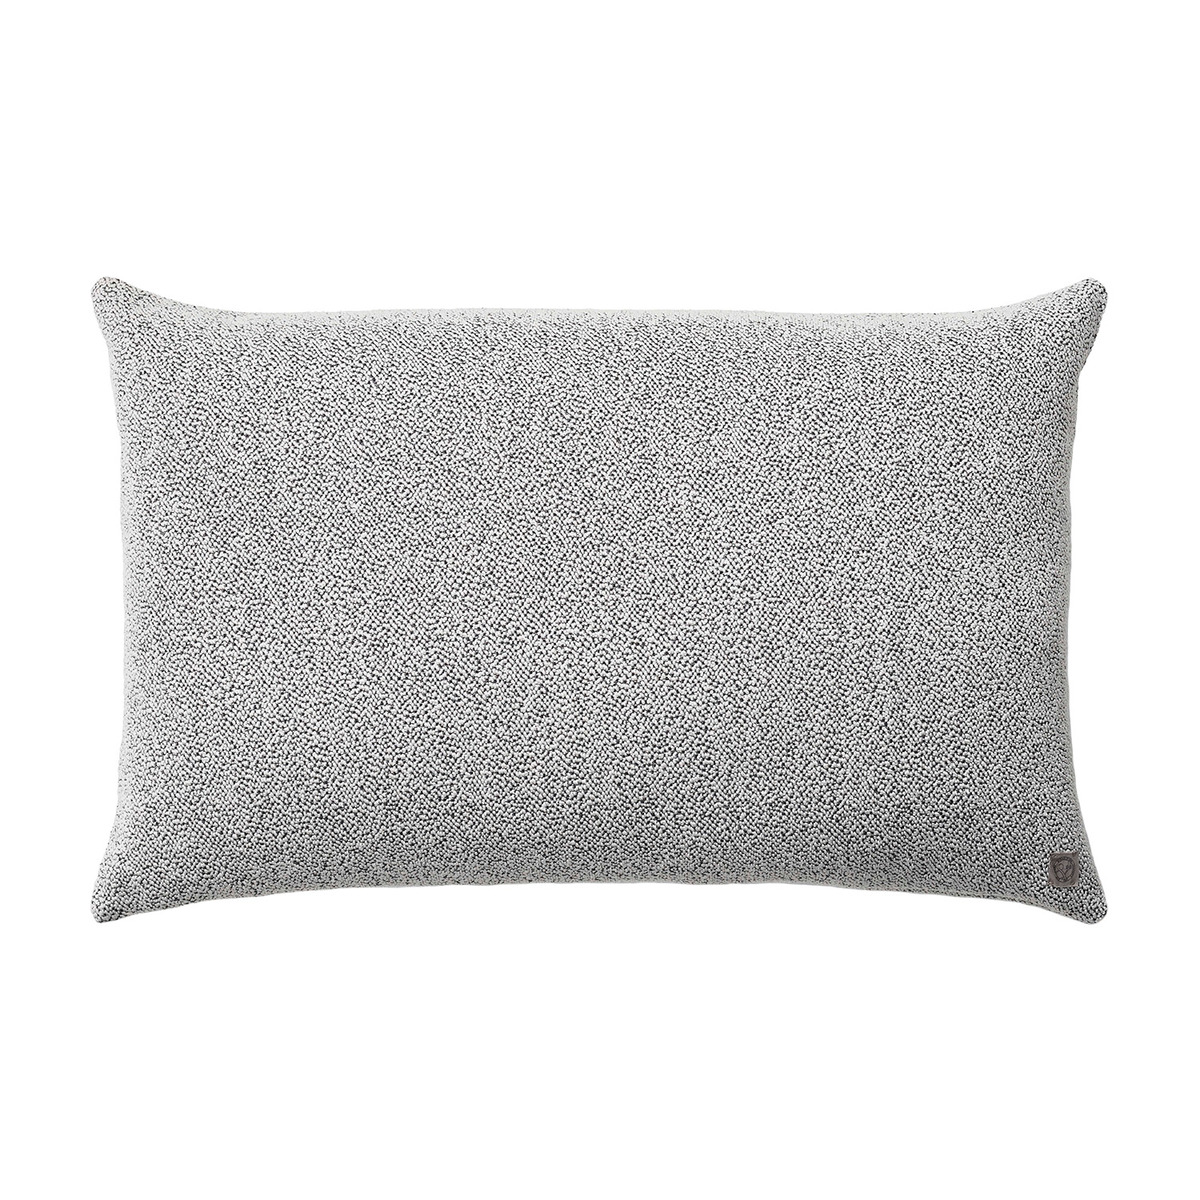 &Tradition Collect Boucle SC30 cushion, 50 x 80 cm, ivory - granite from &Tradition